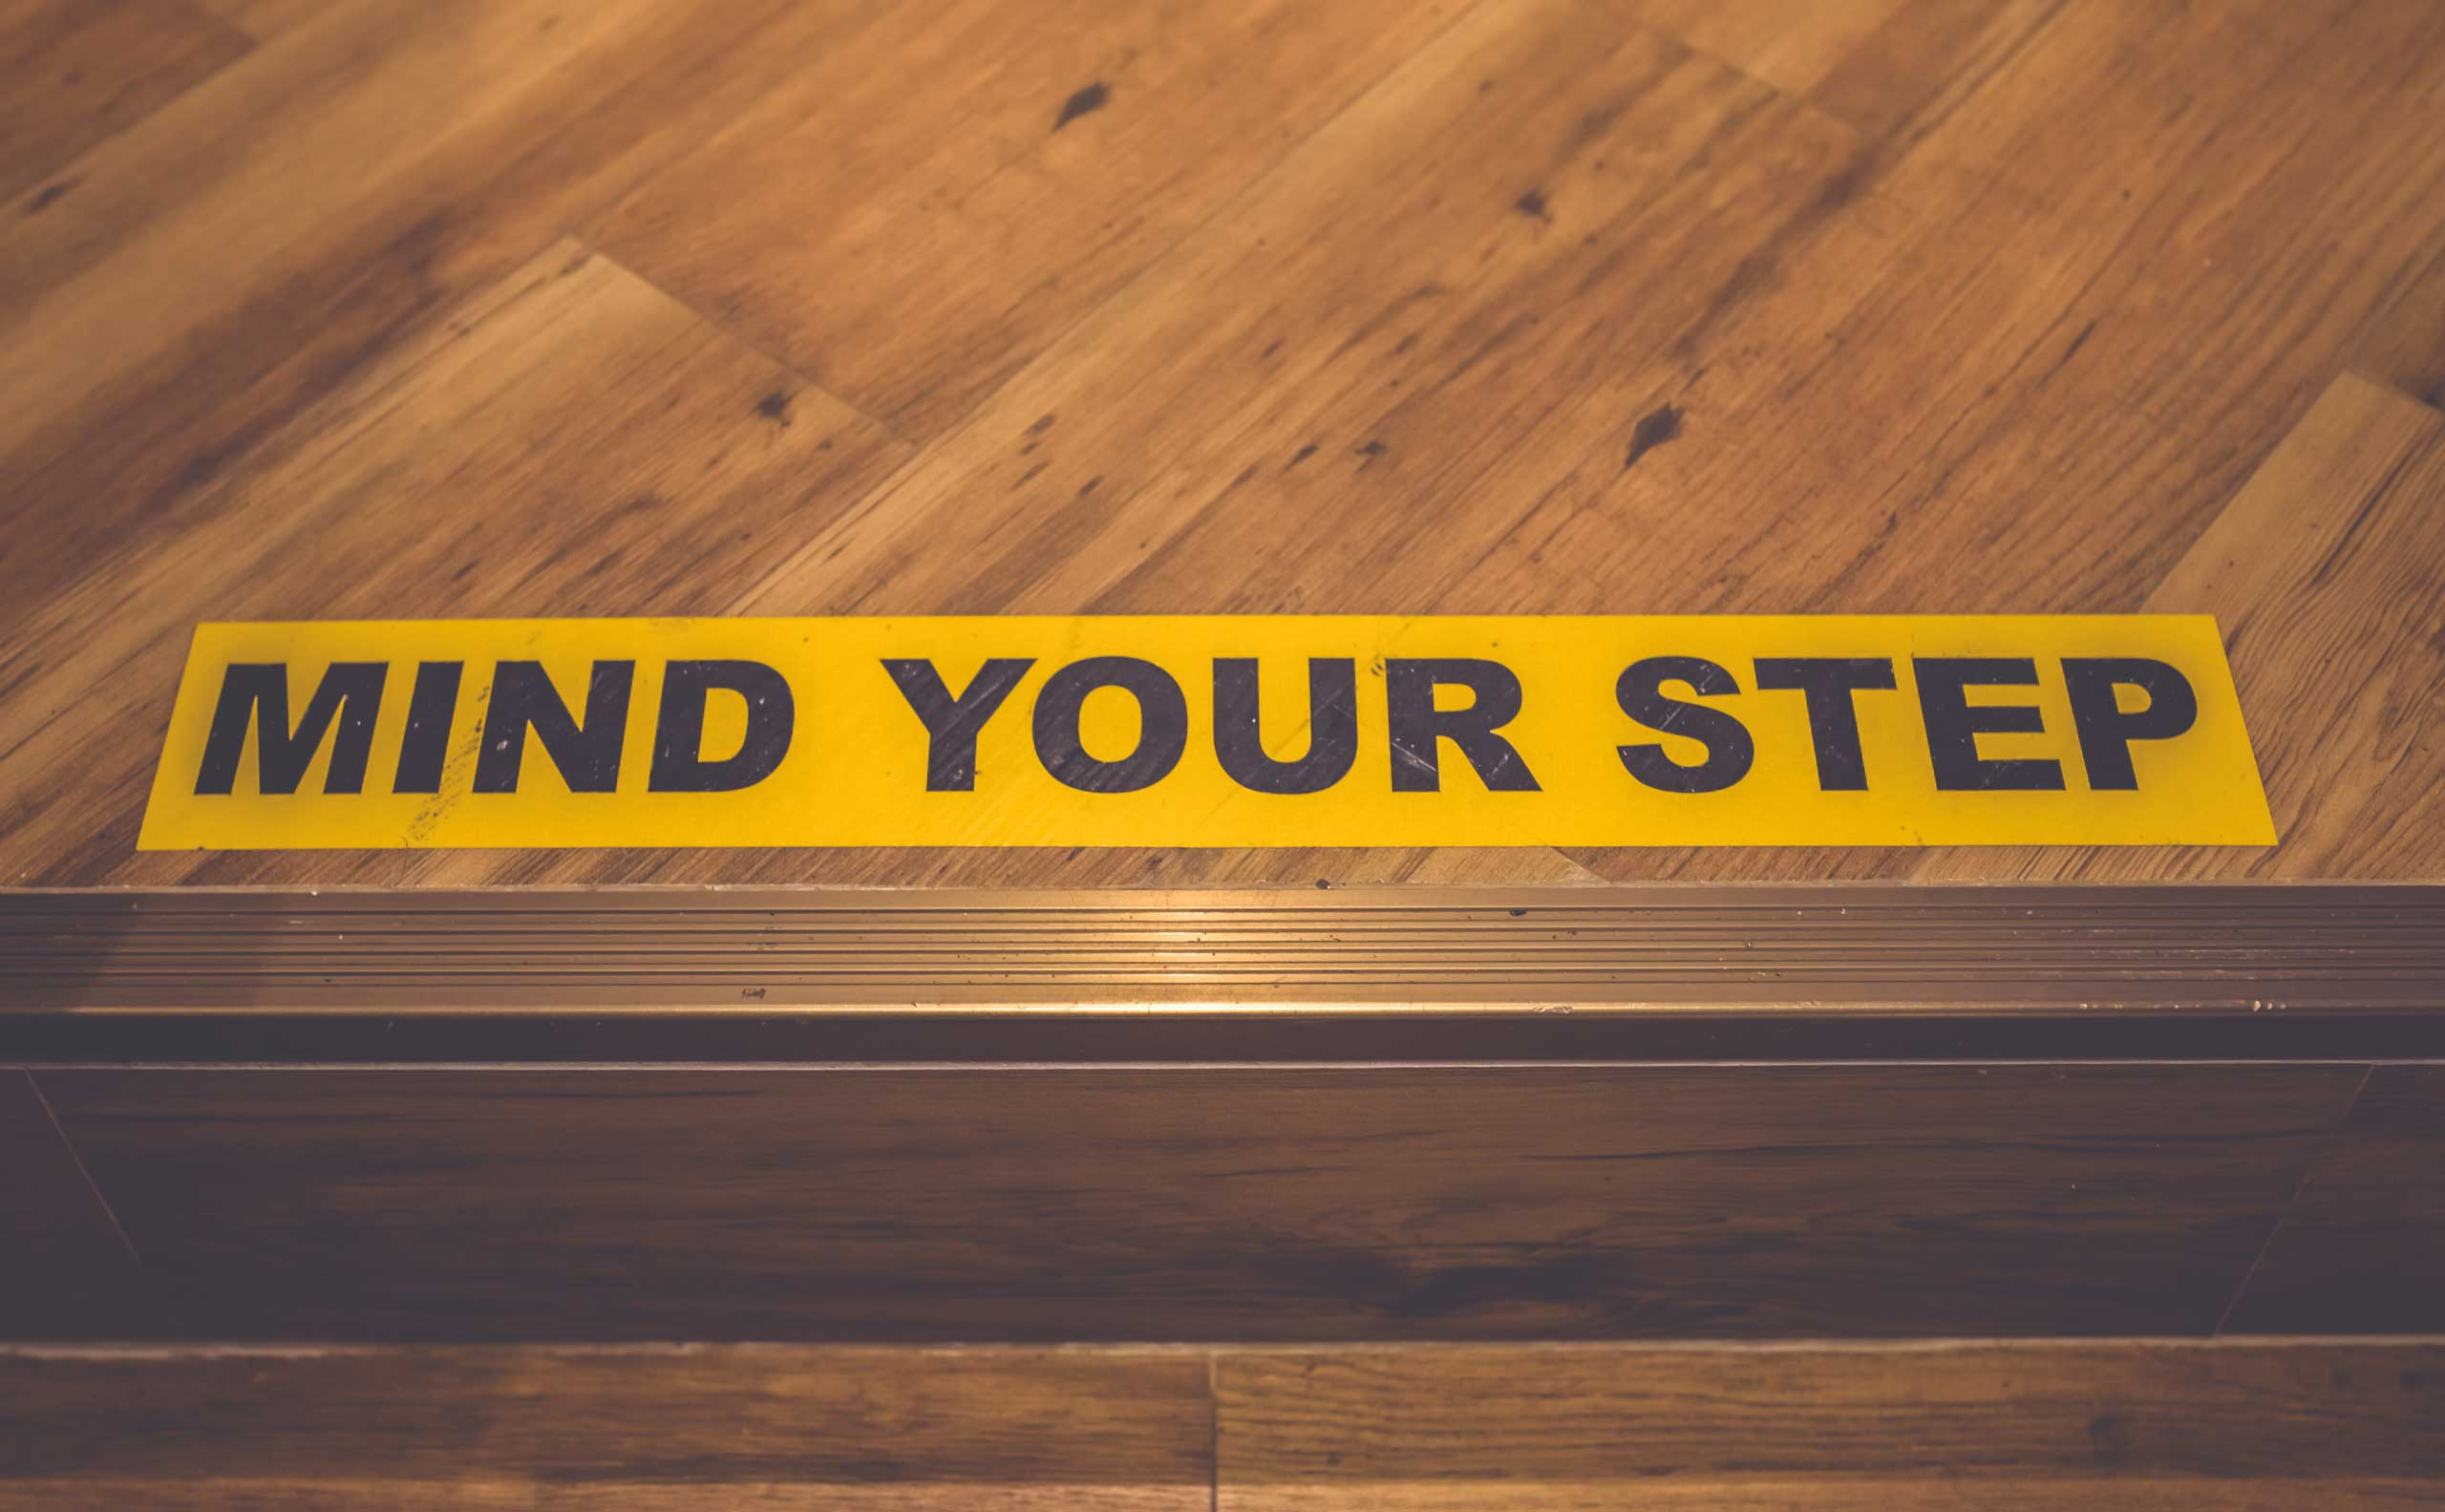 Floor decal that states mind your step